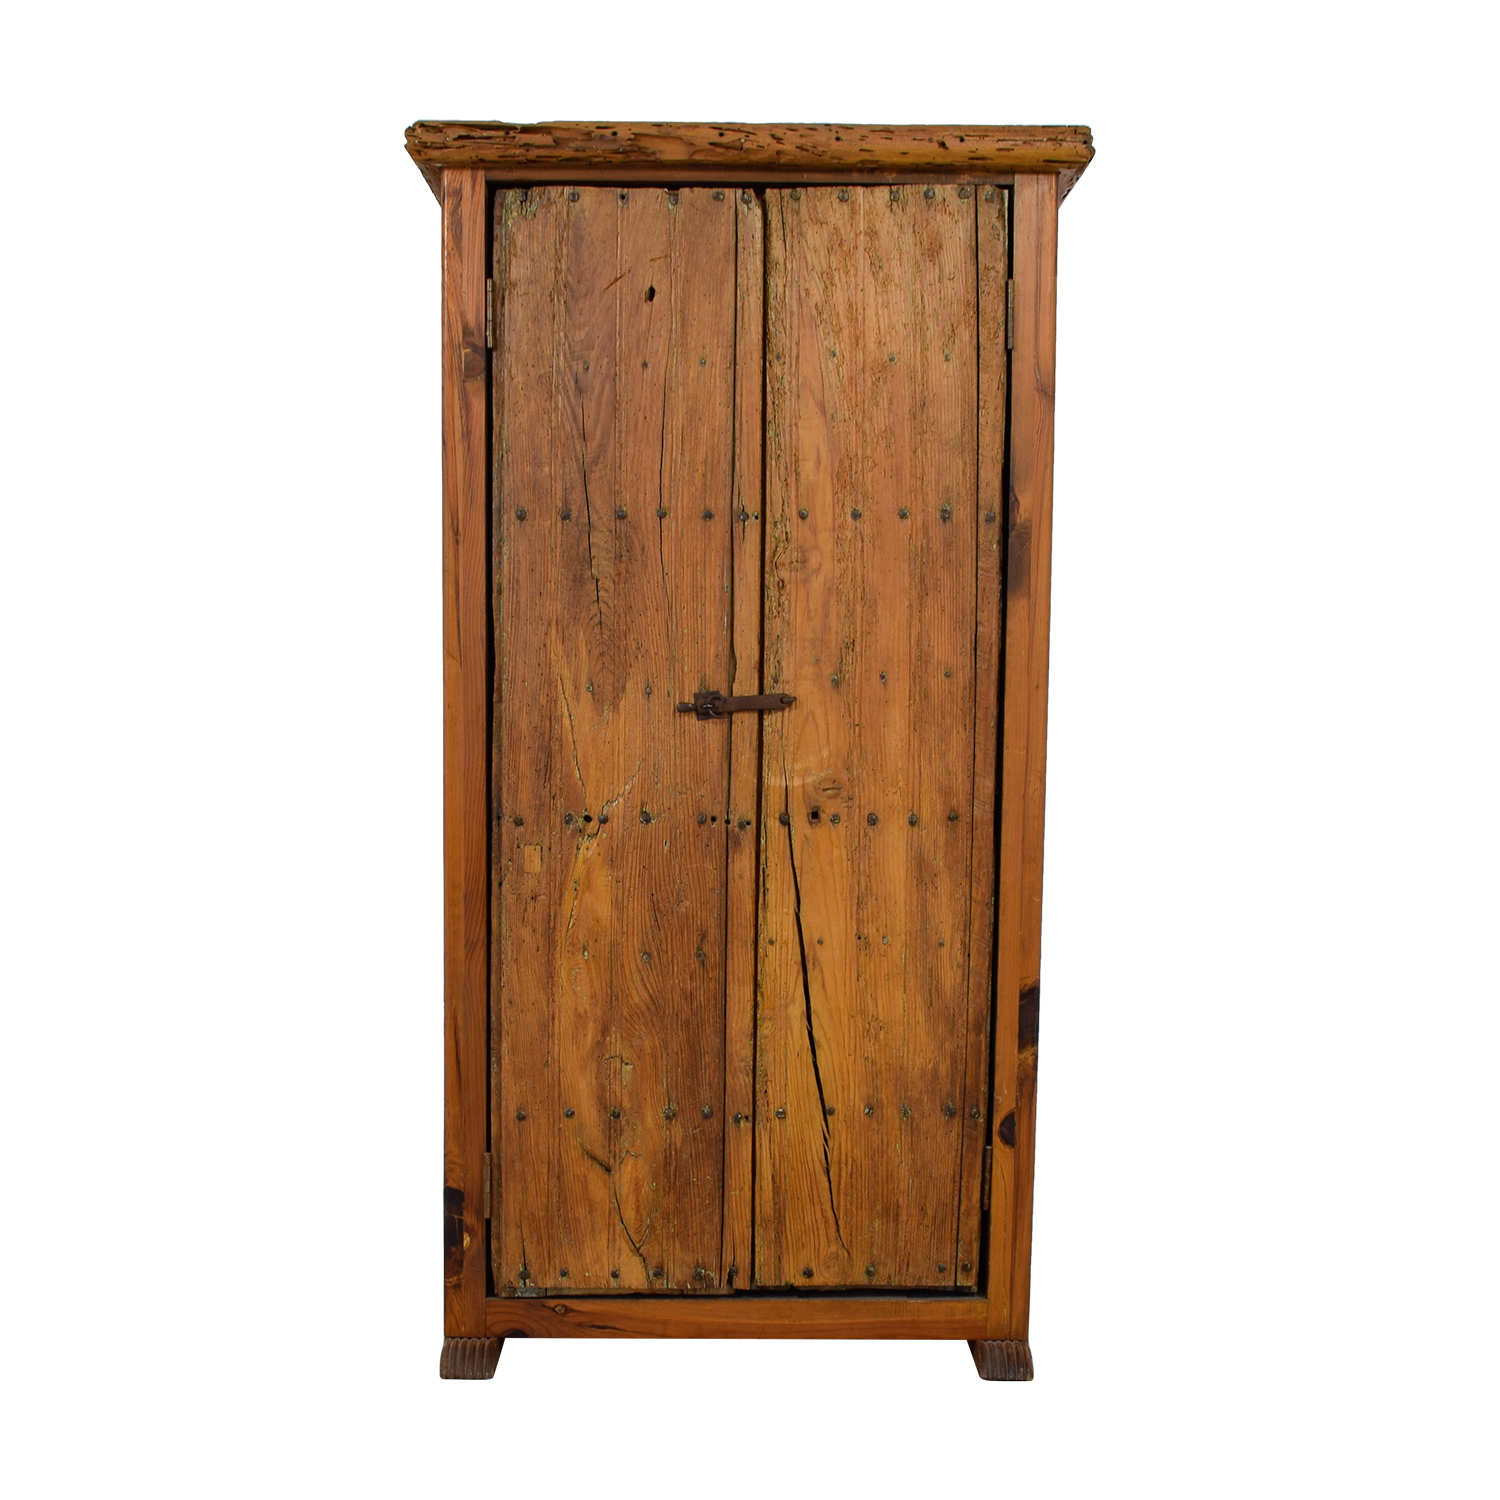 ABC Home & Carpet Authentic Mexican Rustic Barn Wood Armoire sale